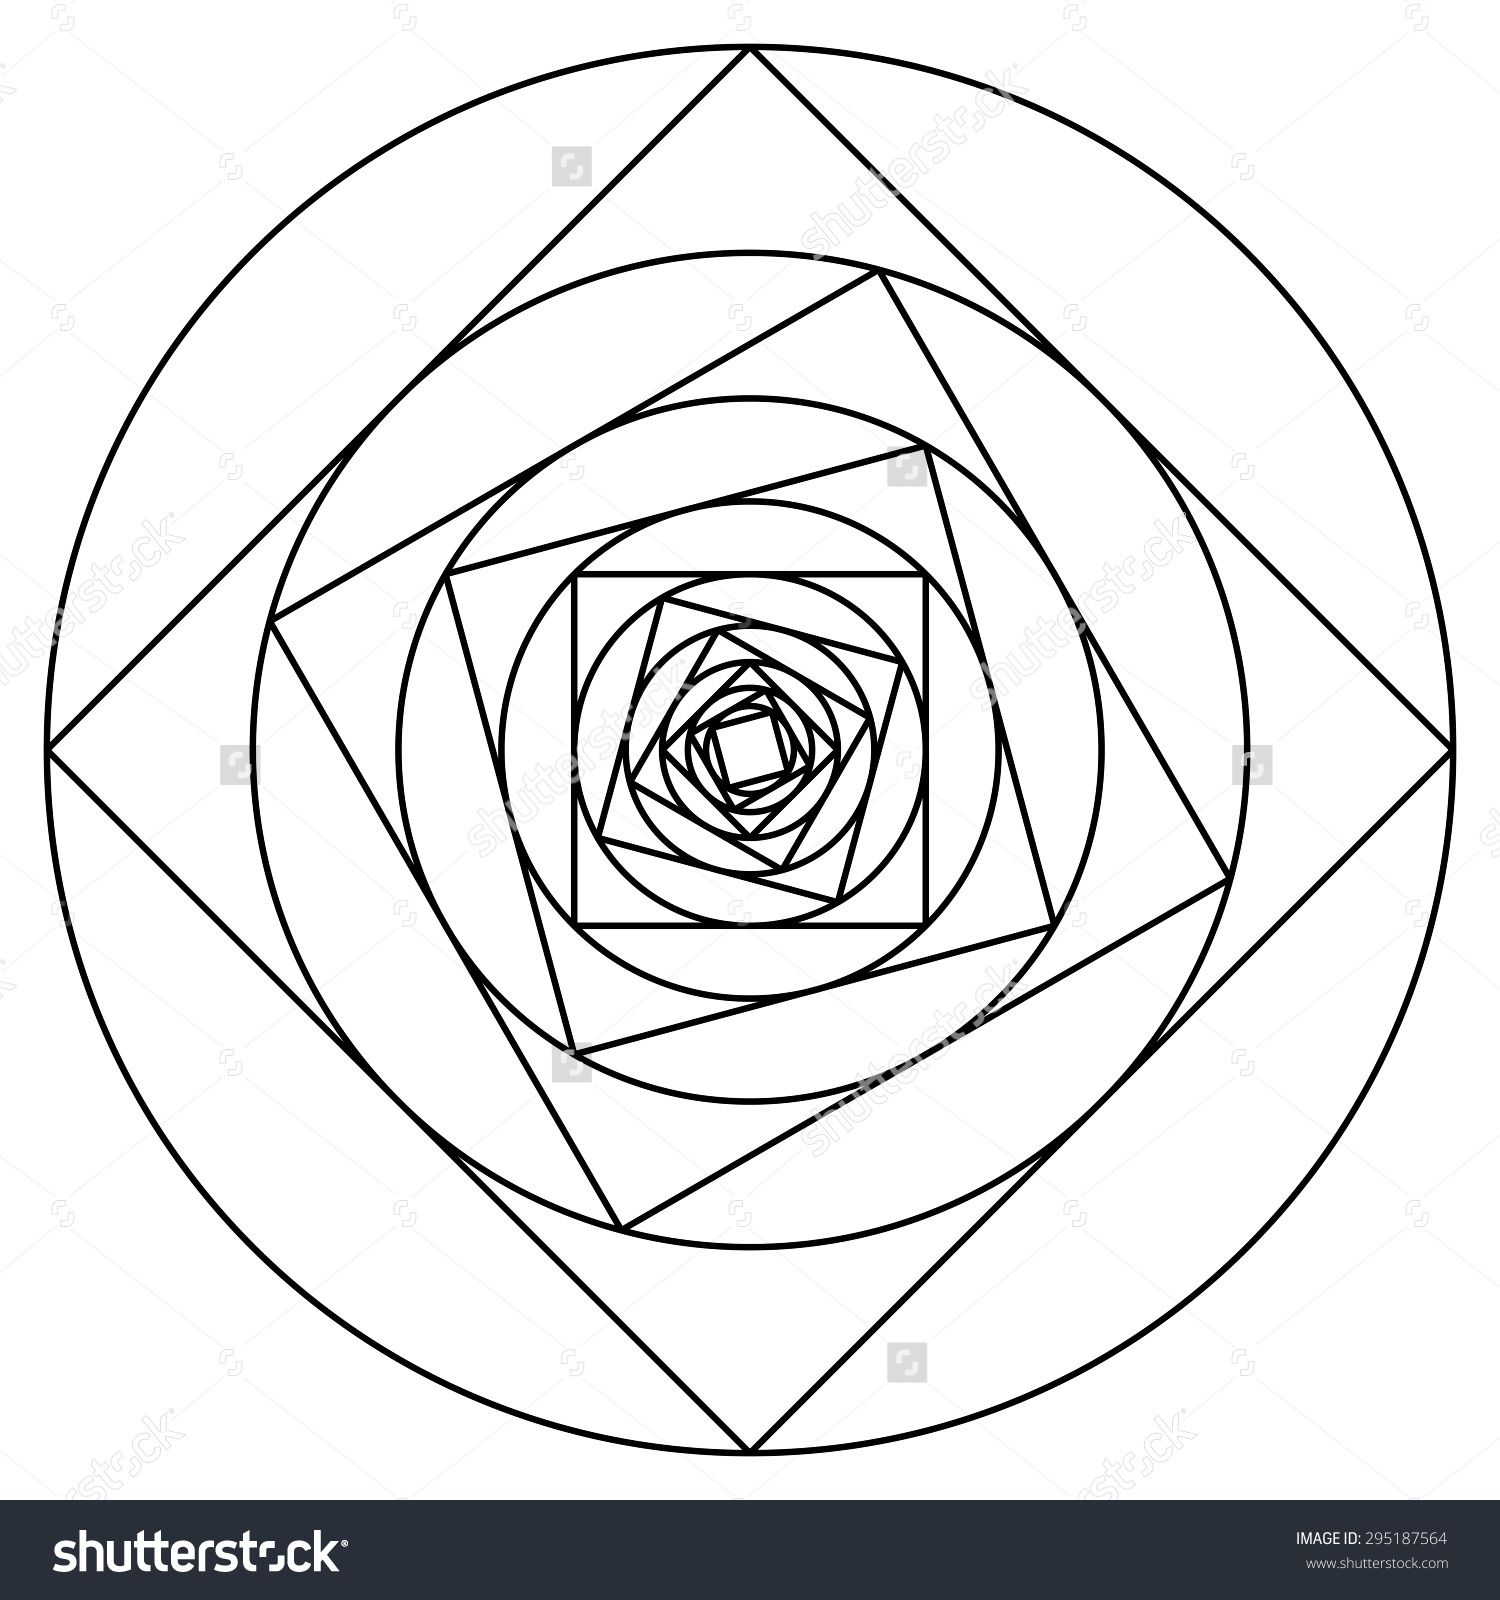 how to draw a fractal spiral - Google Search | Quilt Inspiration ...